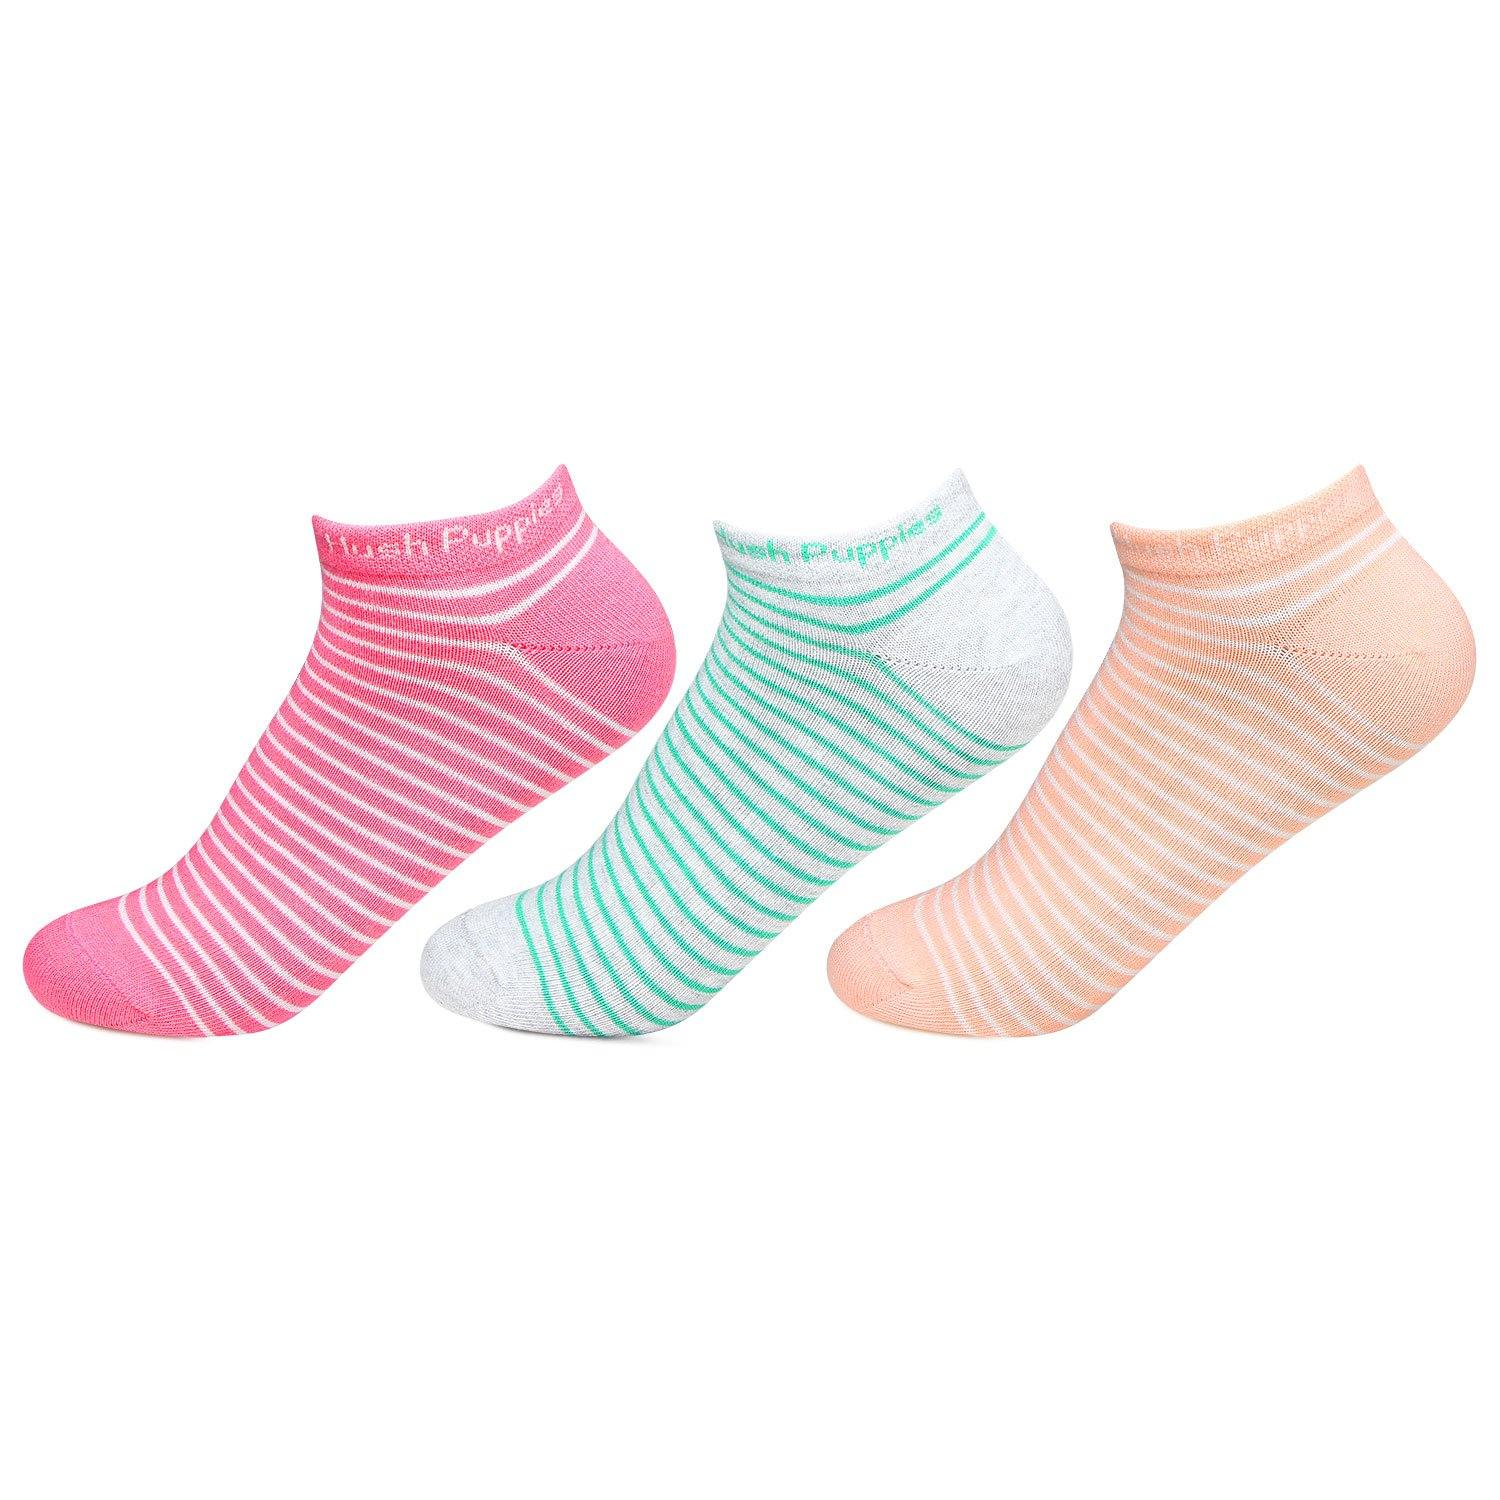 Hush Puppies Women's Stripe Low Ankle Socks - Pack of 3